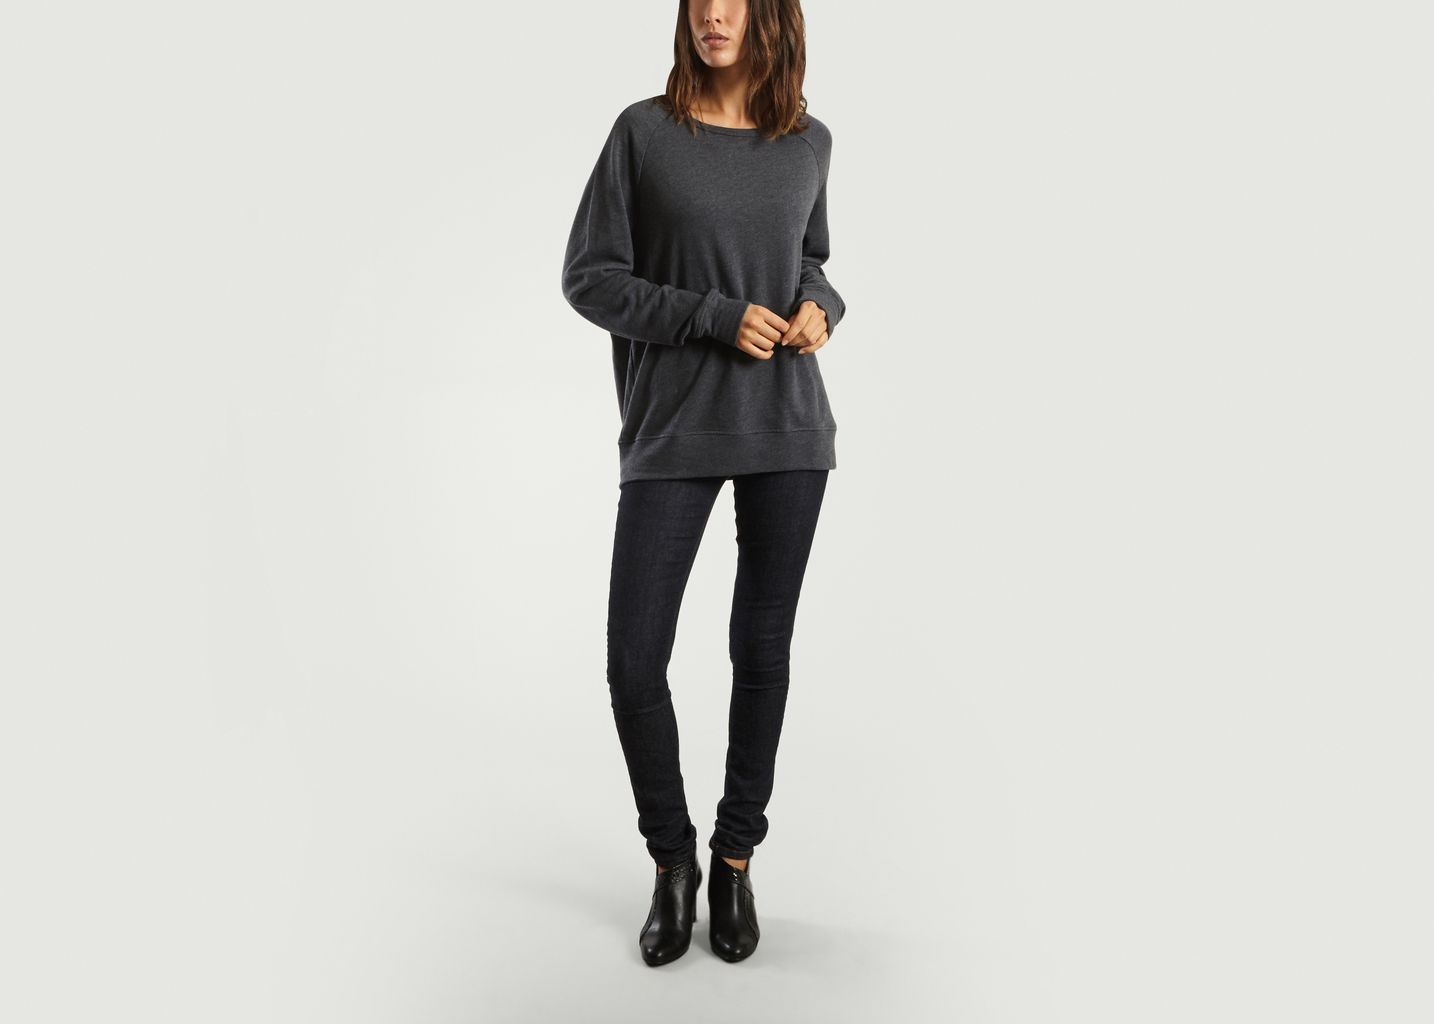 6684965a6307 Toubobeach Sweat American Vintage L exception Anthracite Awwgd